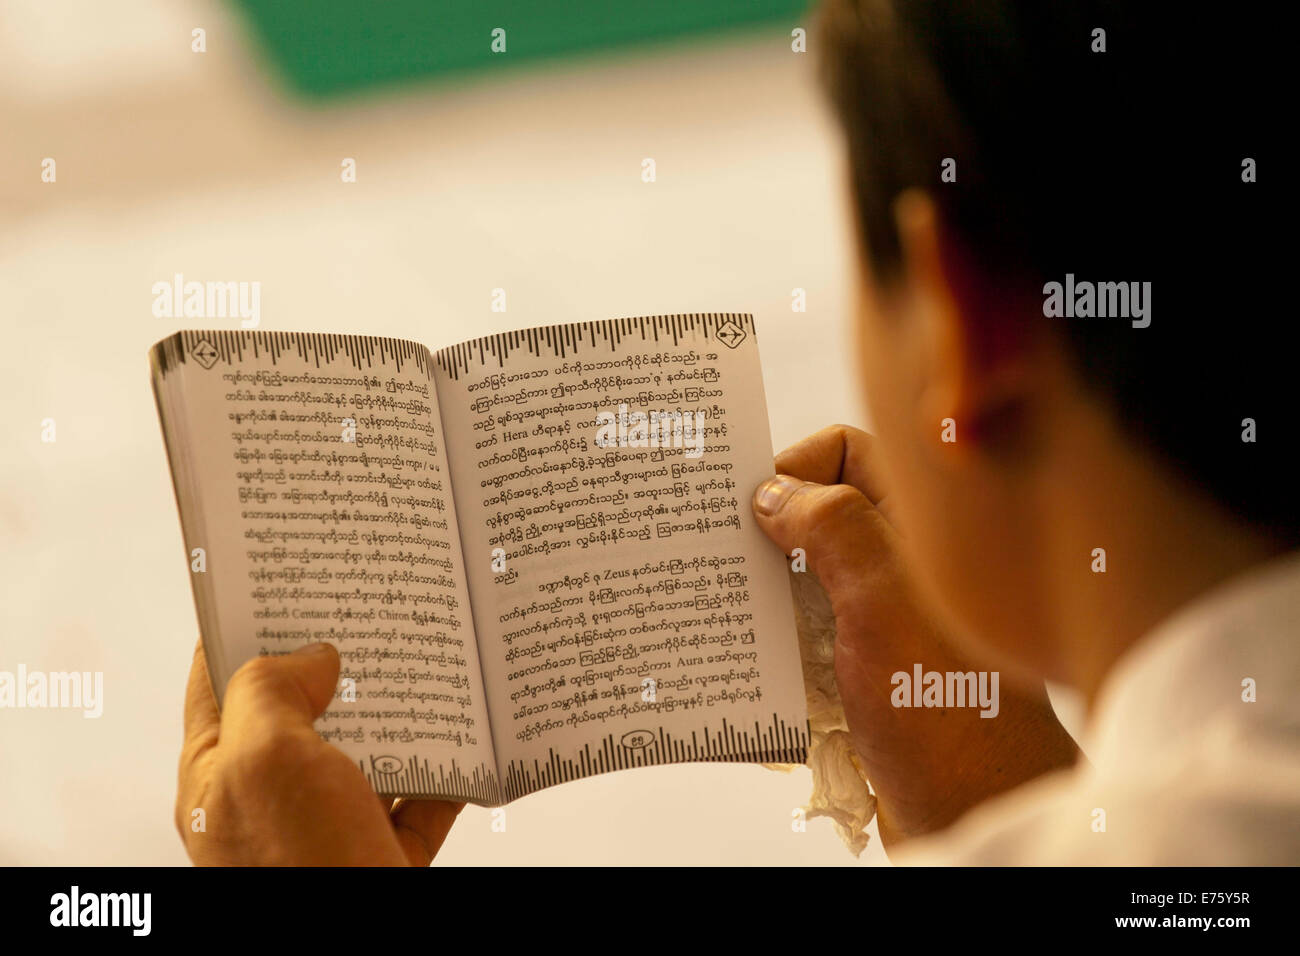 Devout Buddhist reading holy scripture, from behind, Yangon, Myanmar - Stock Image